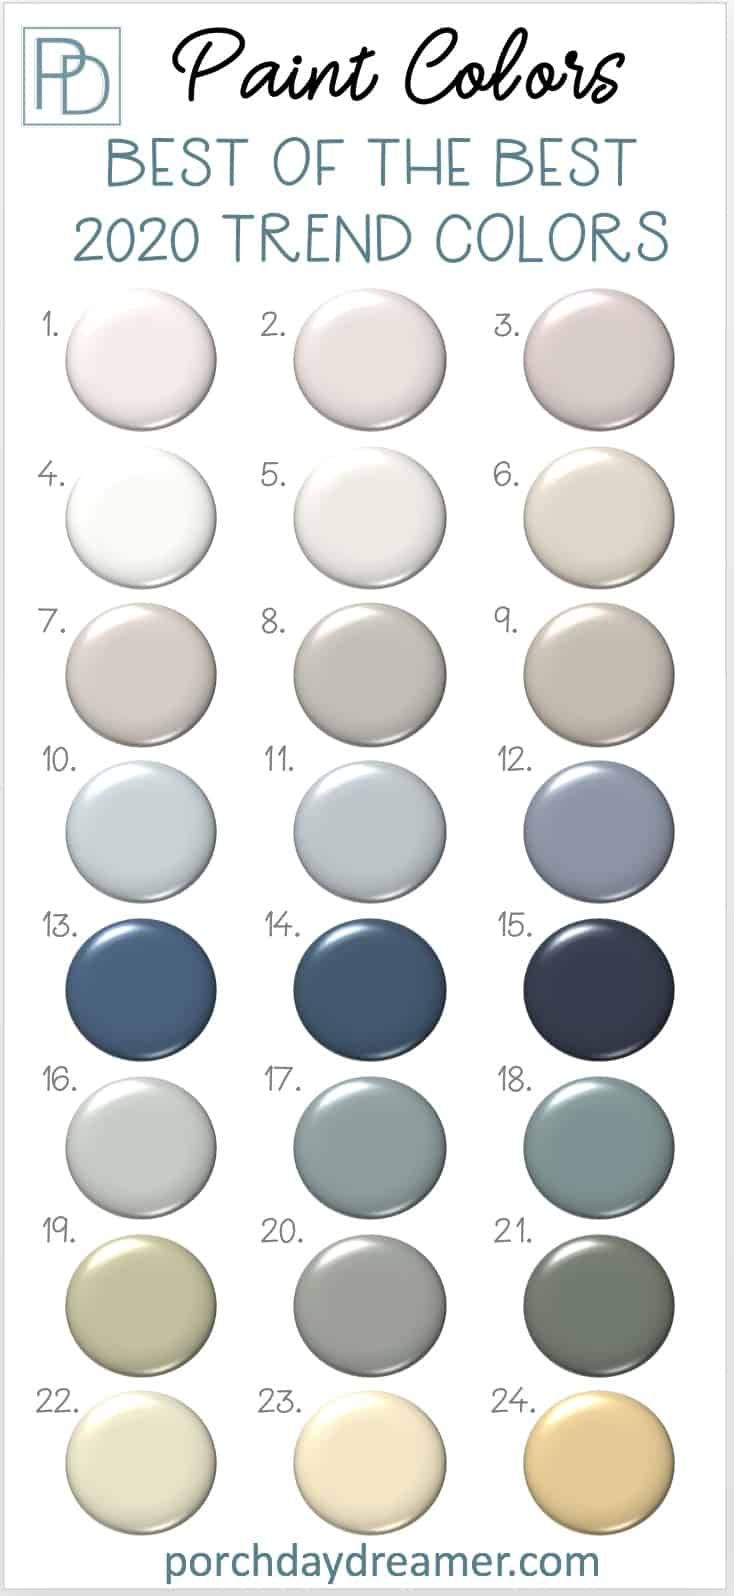 2020 Paint Color Trends: 24 Best of the Best Picks in 2020 ...